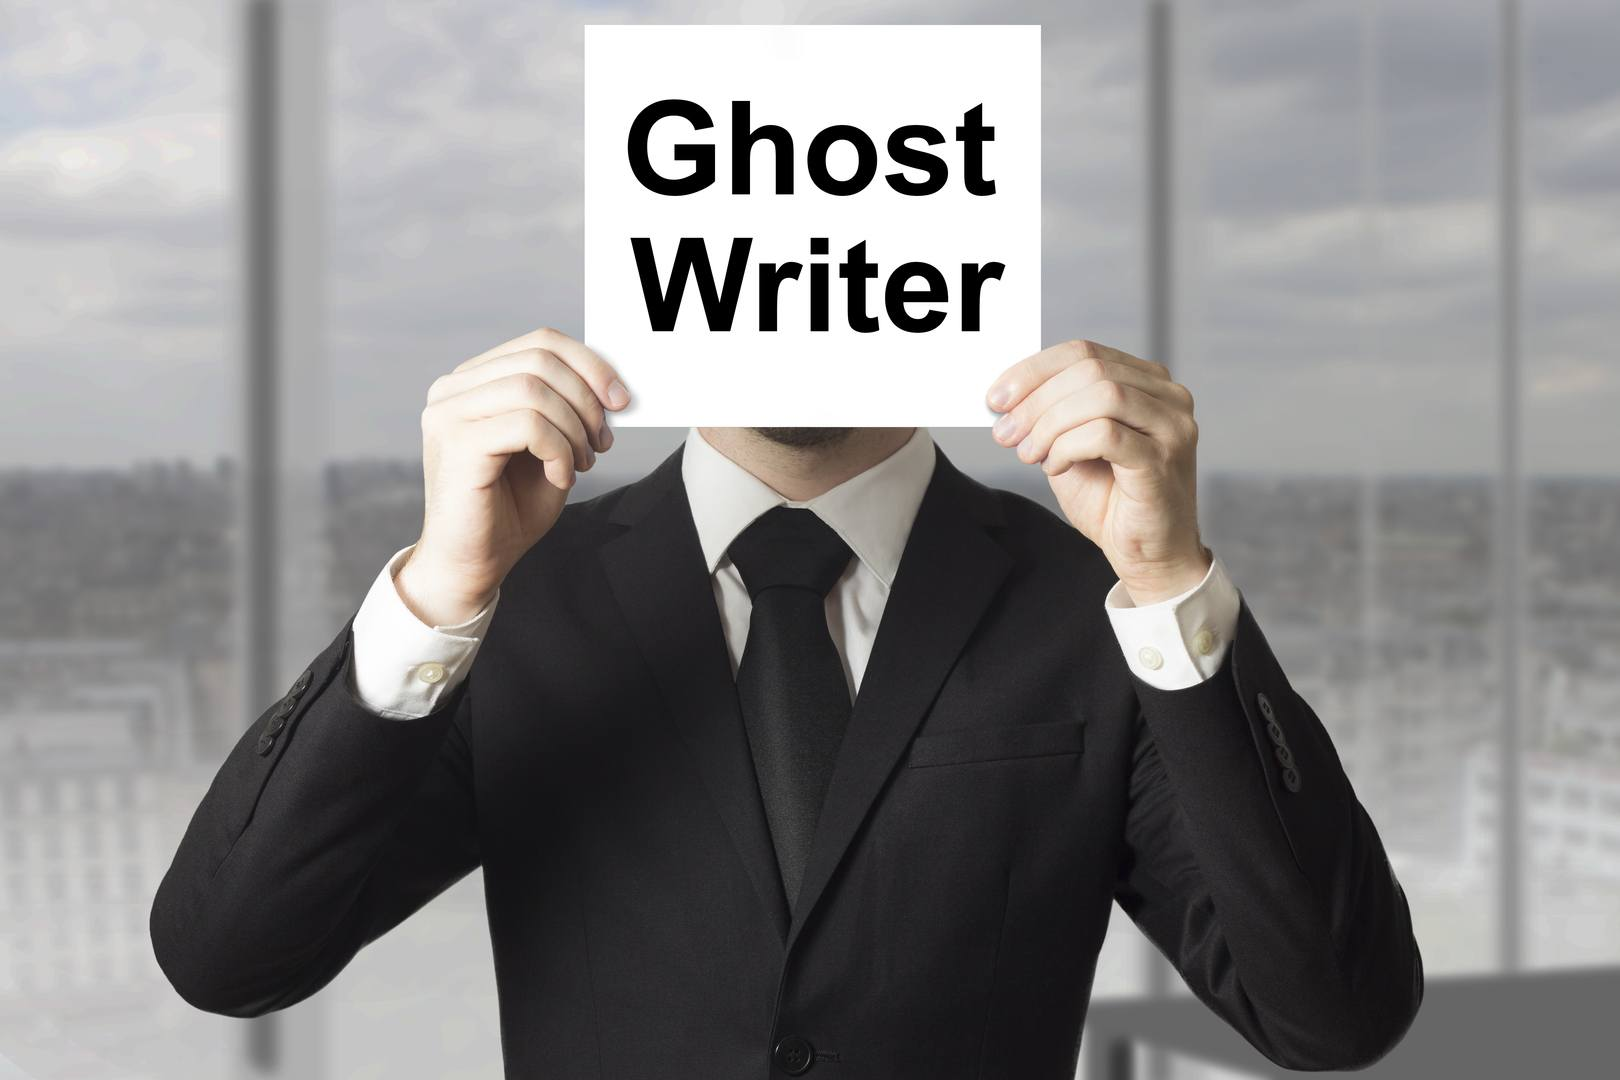 TOP 10 REASONS TO USE A GHOSTWRITER